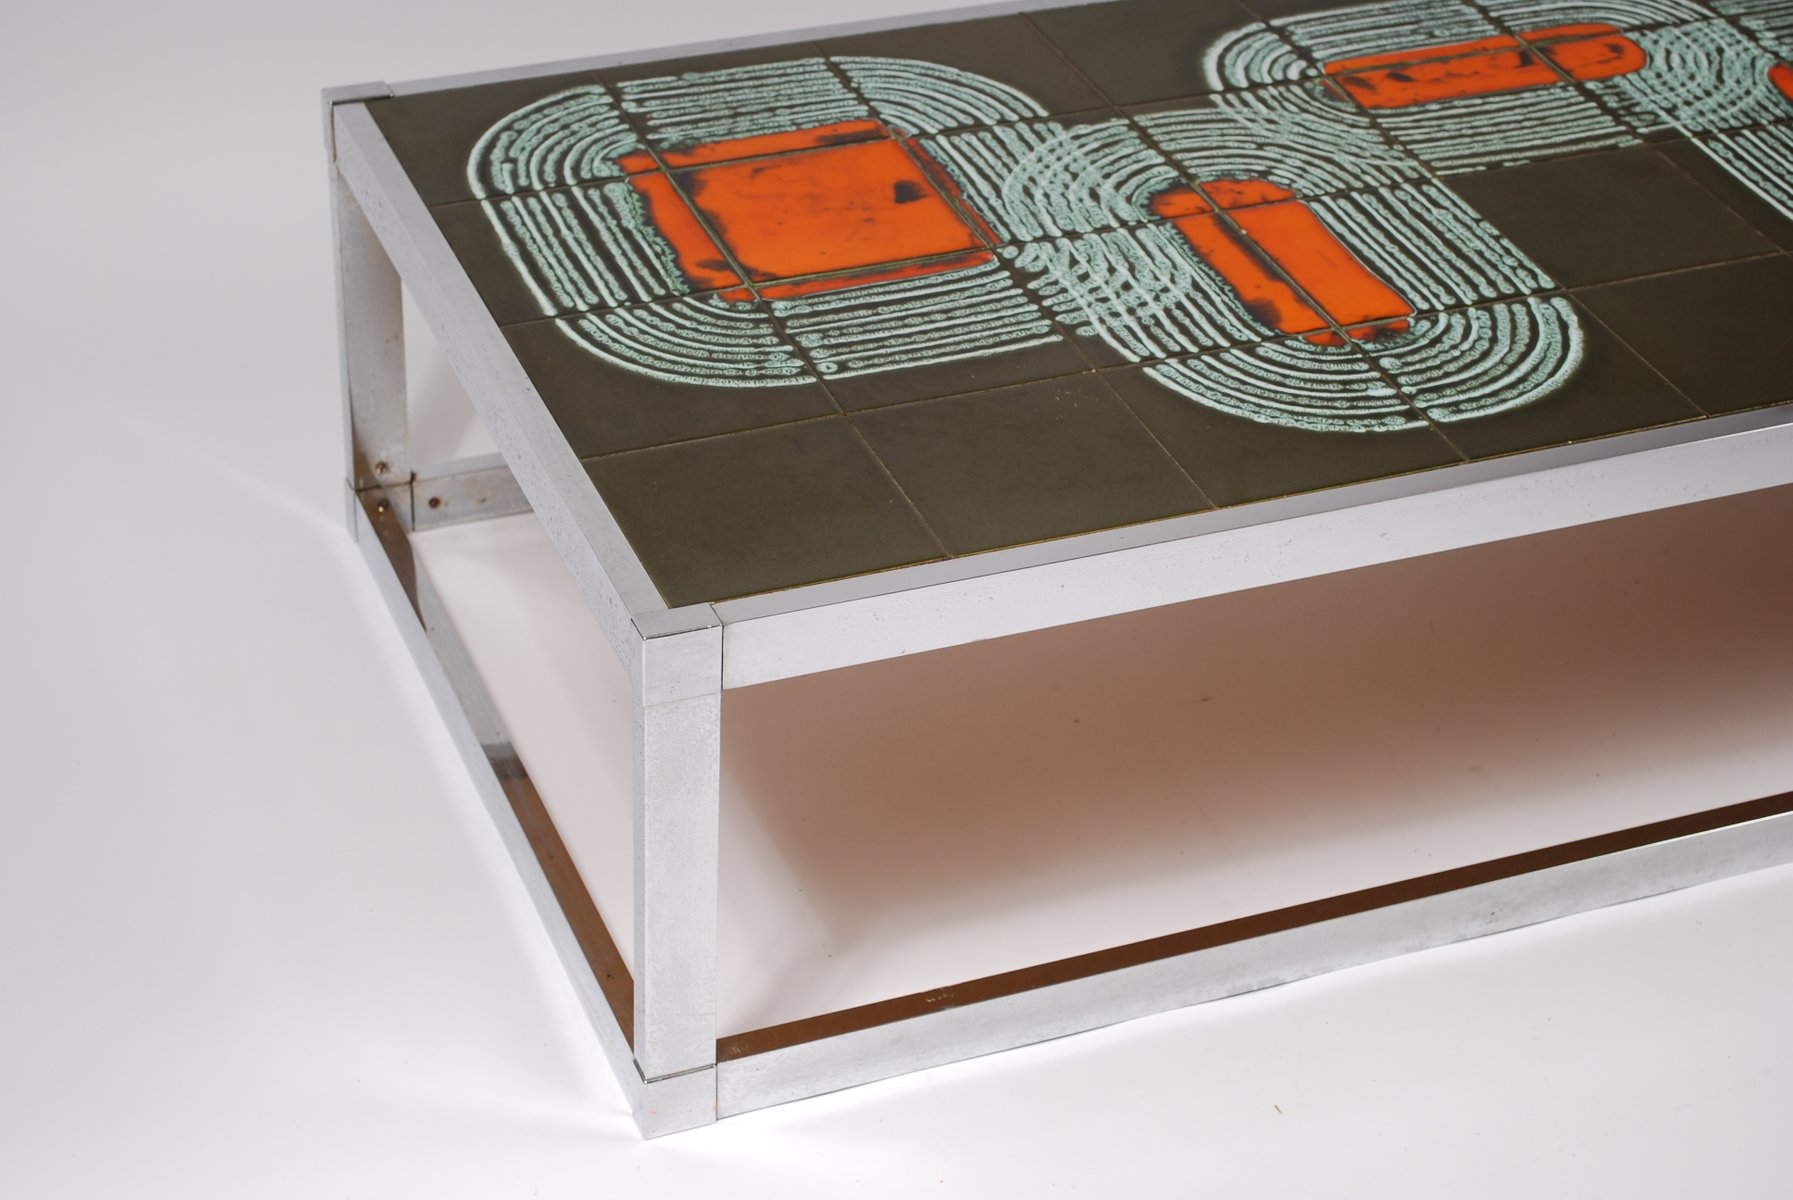 Vintage Tile Coffee Table 1960 for sale at Pamono